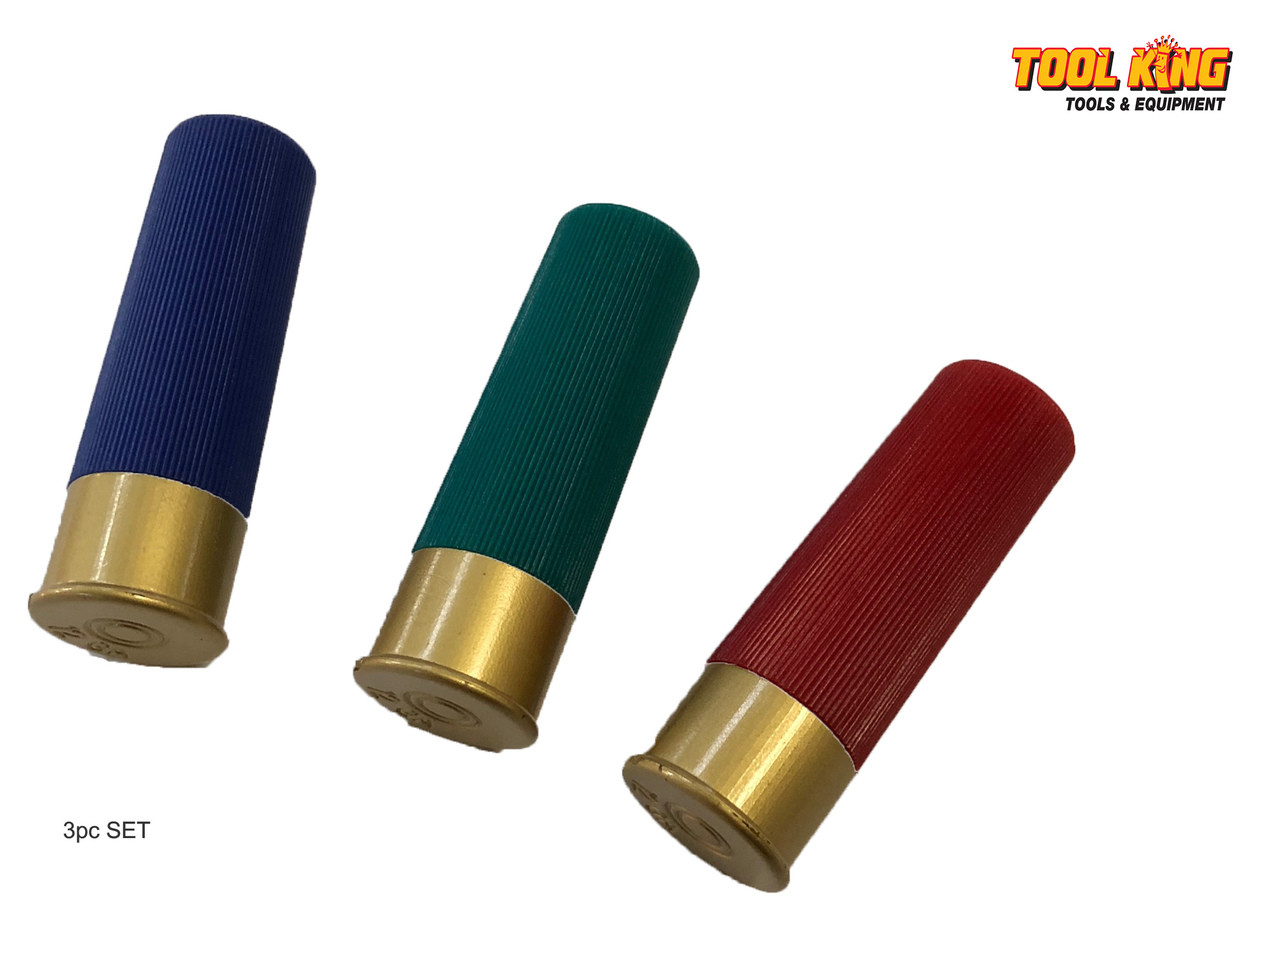 3pc Set POCKET KNIFE  12 Gauge shotgun shell  bullet replica